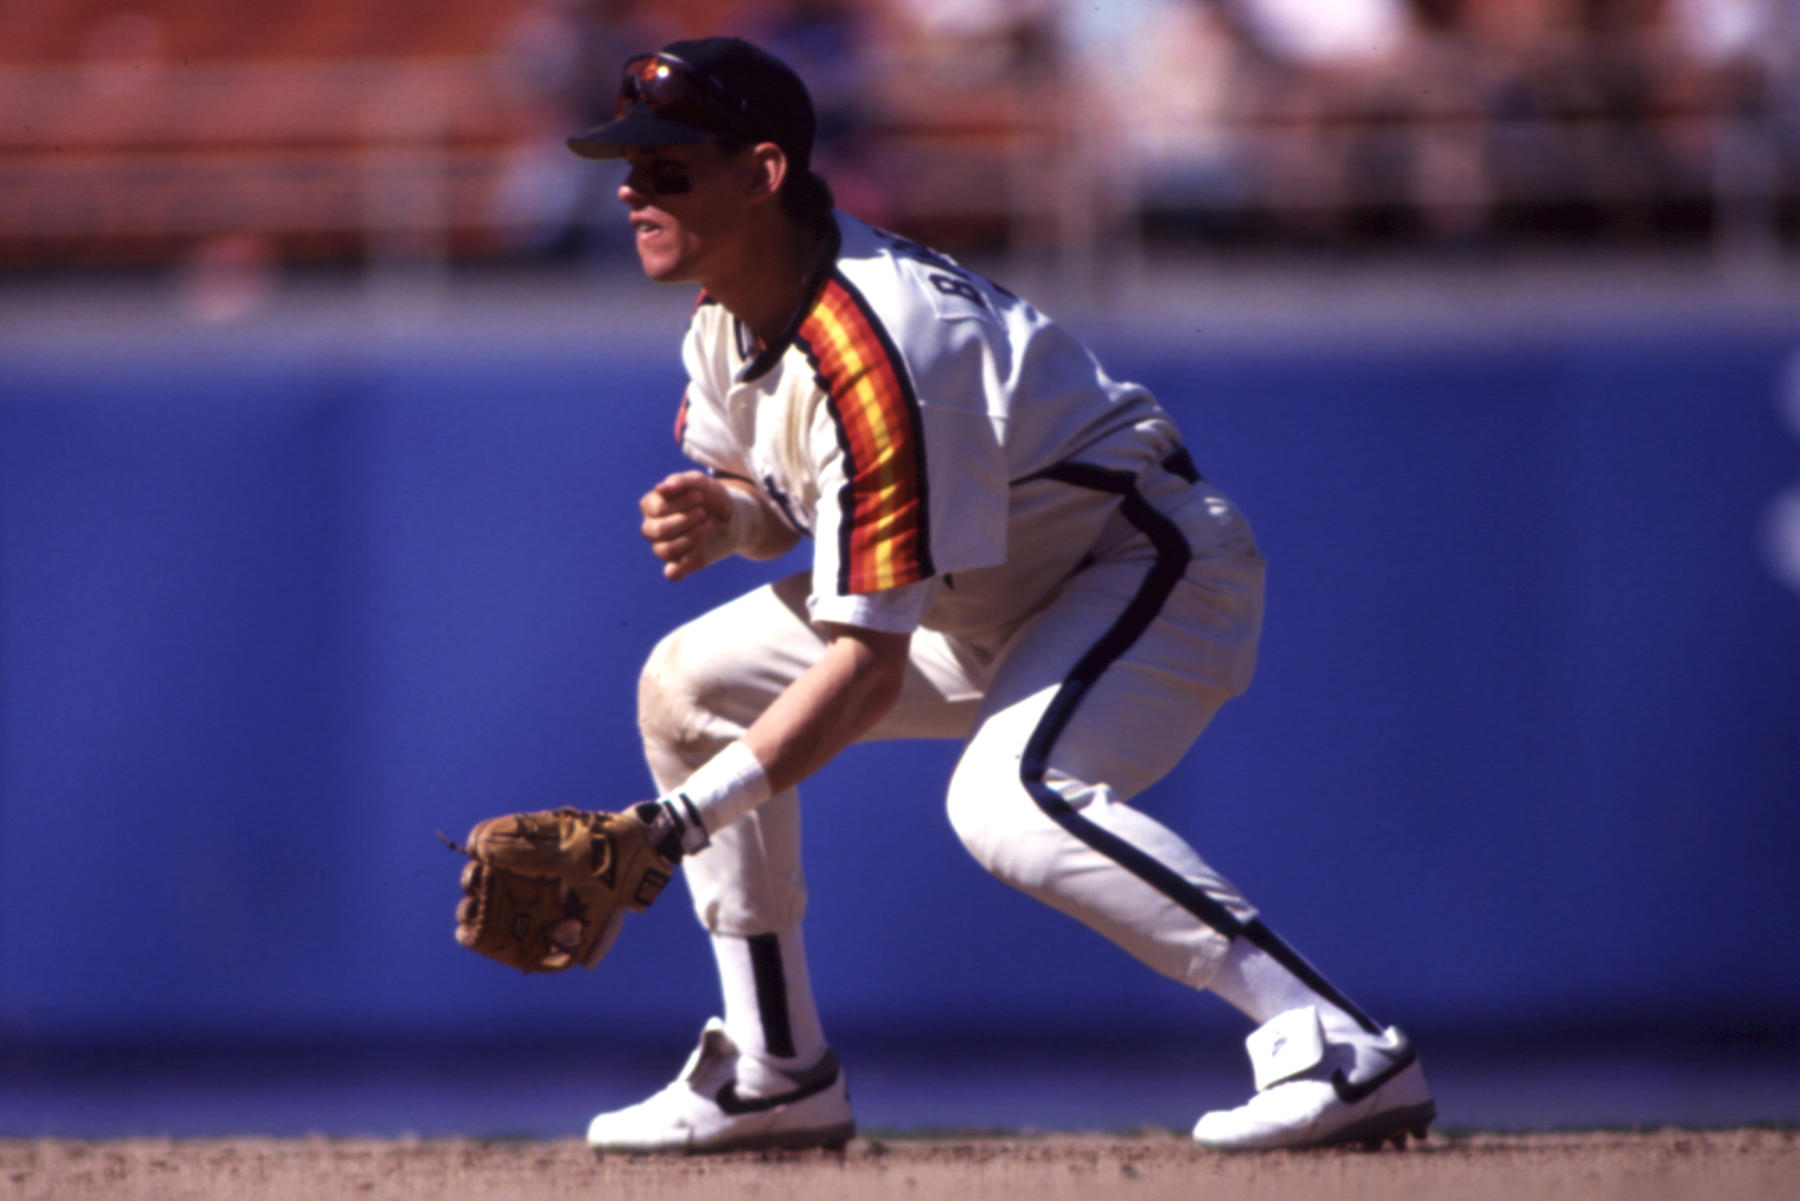 Craig Biggio of the Houston Astros playing second base, 1993. - BL-12488.94 (John Cordes / National Baseball Hall of Fame Library)